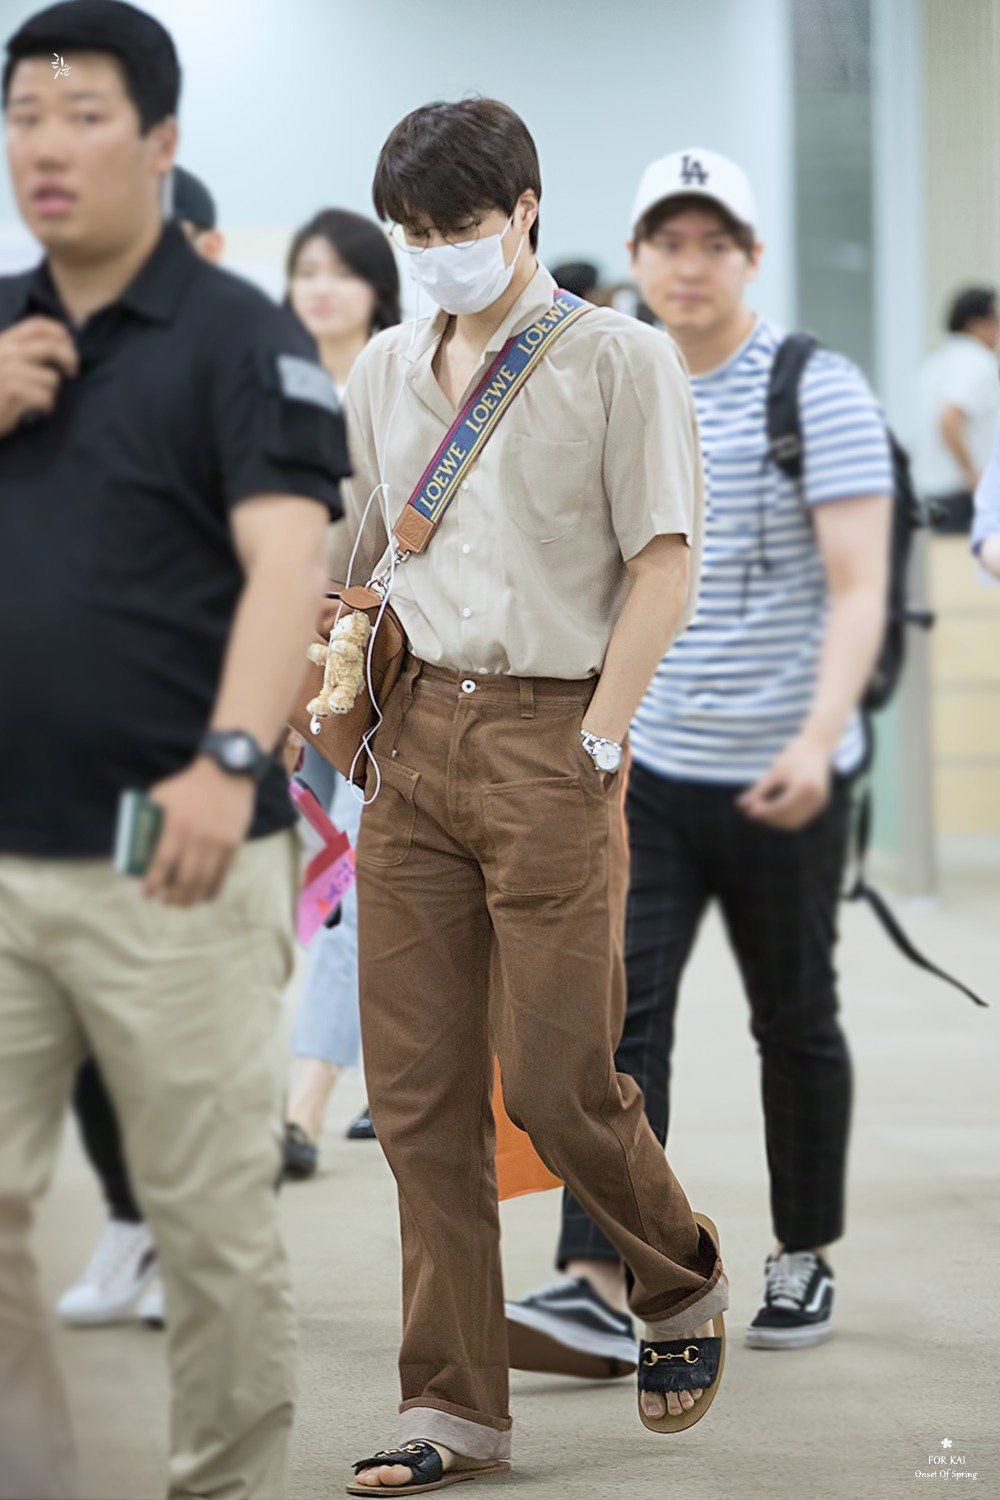 ic: Exo Kai appearing in Gimpo Airport on 02/07/18, Source: Unknown